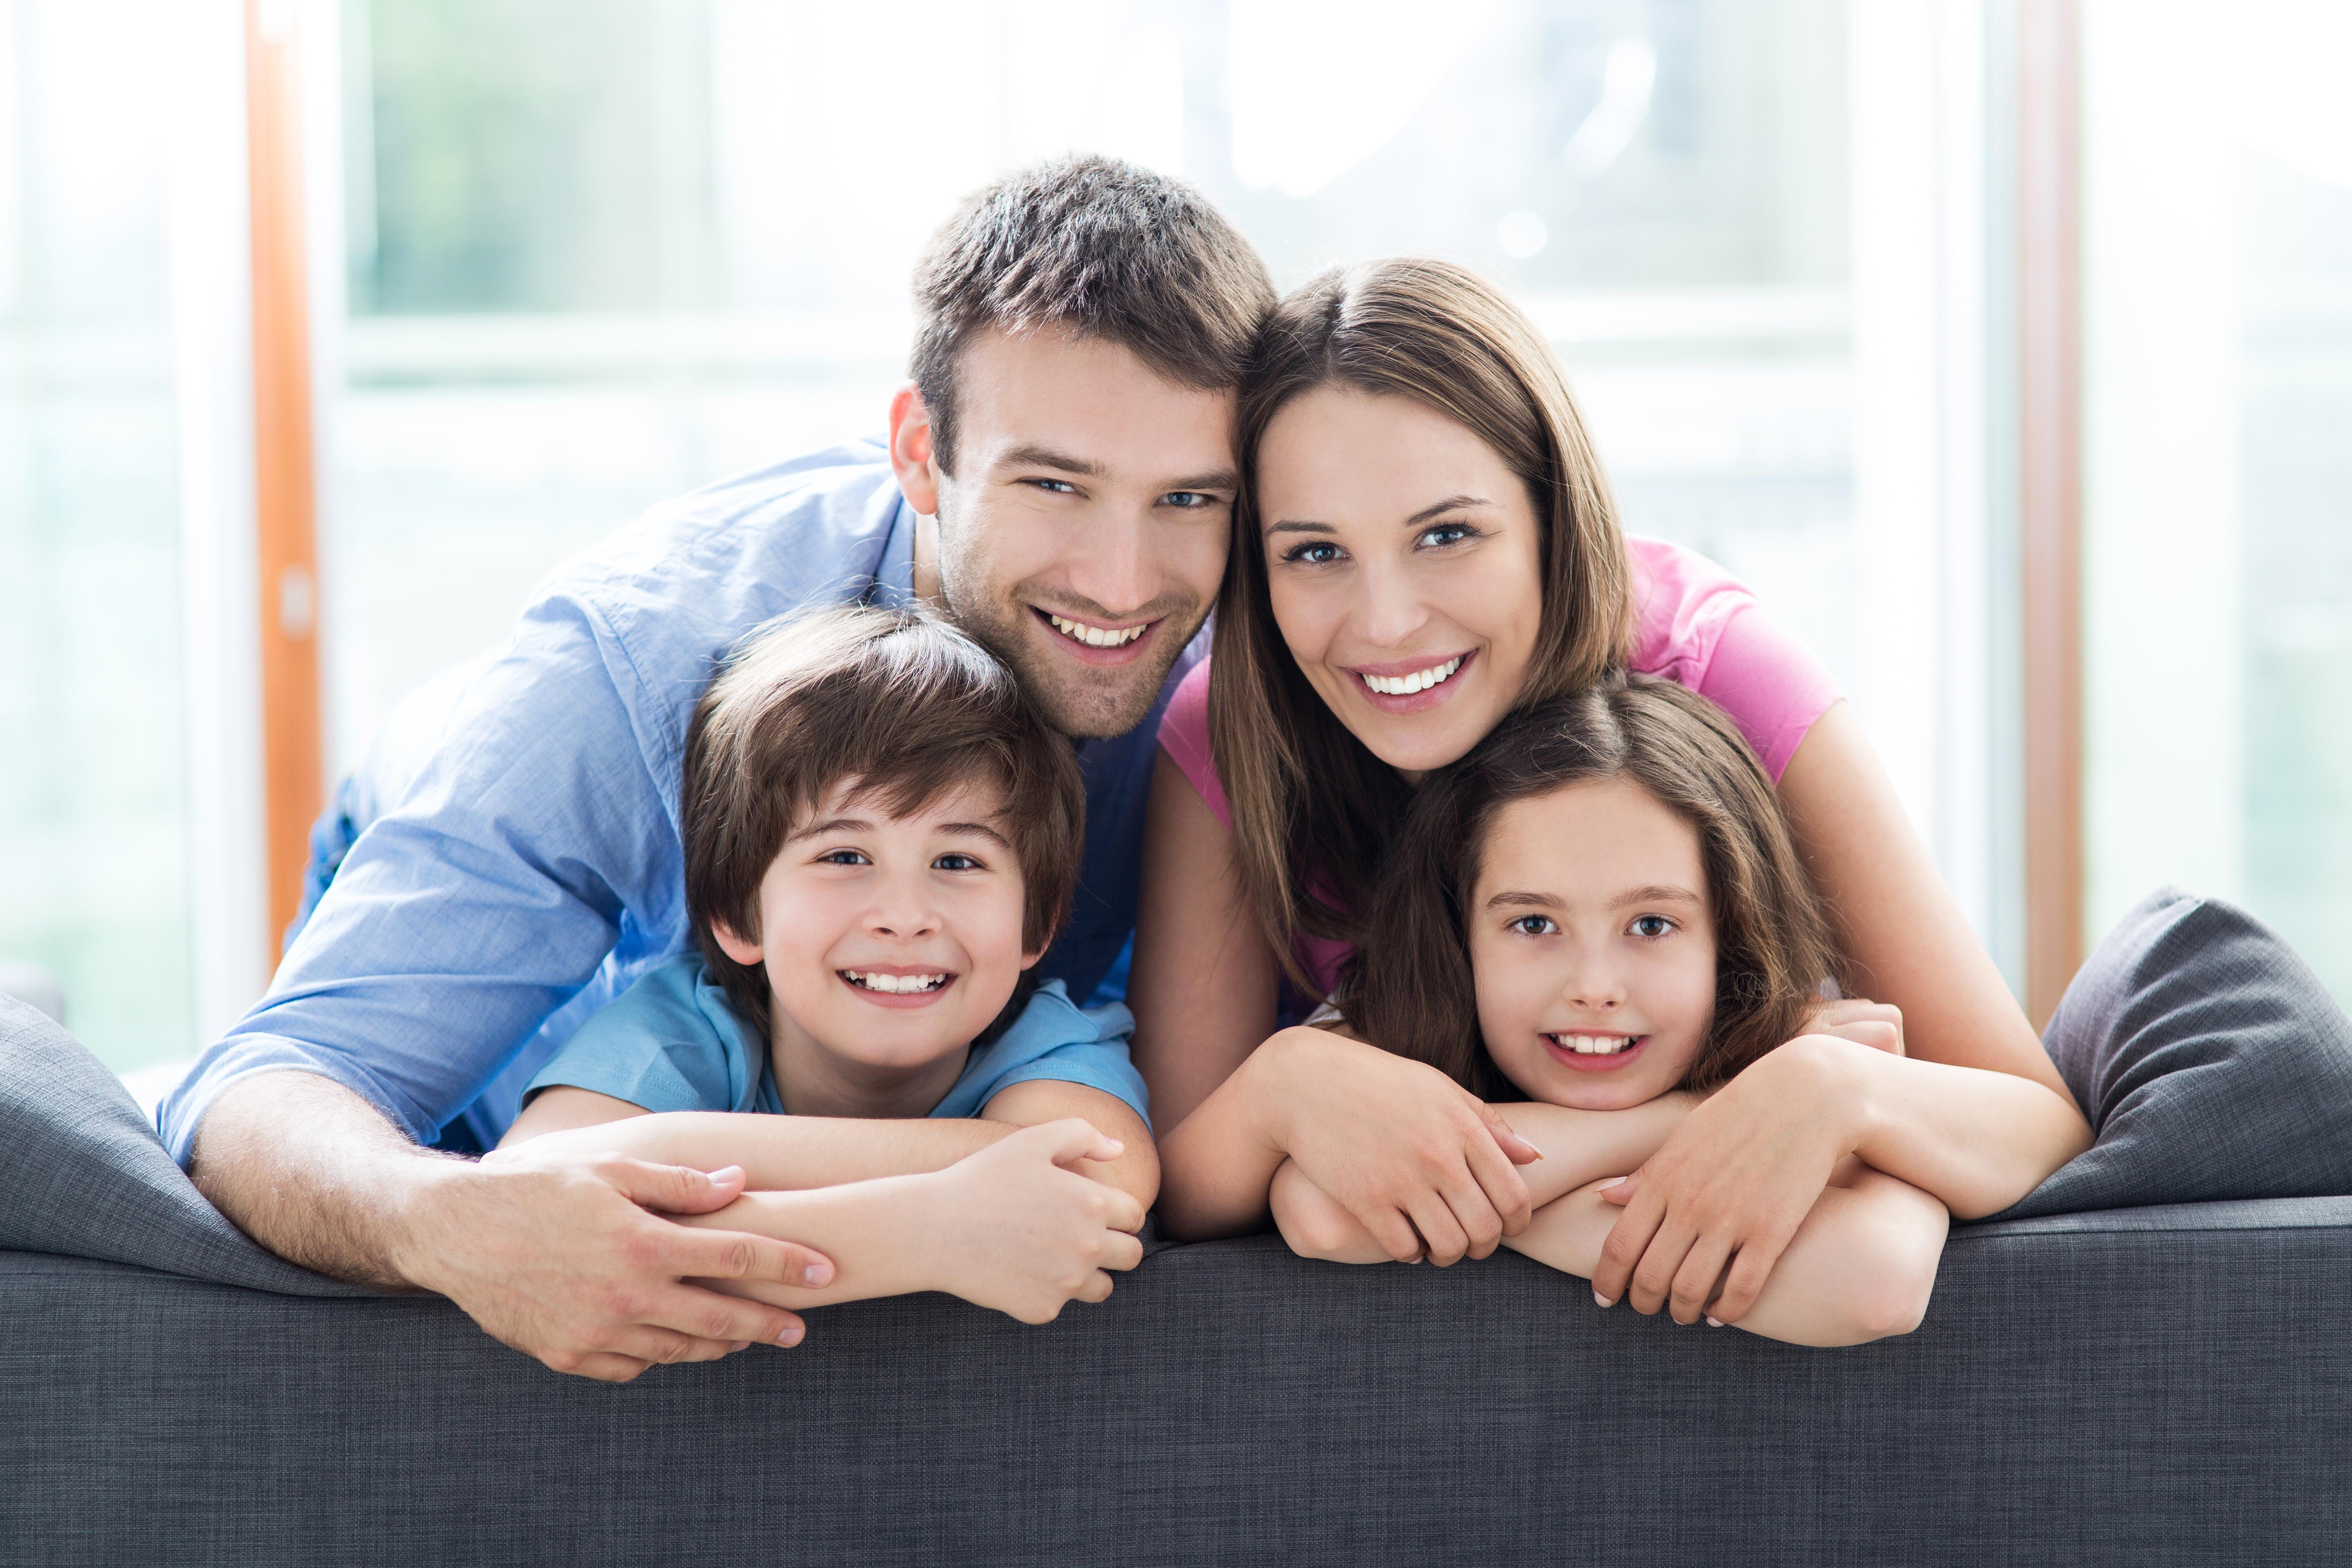 Download Family Pictures Images ClipArt Best